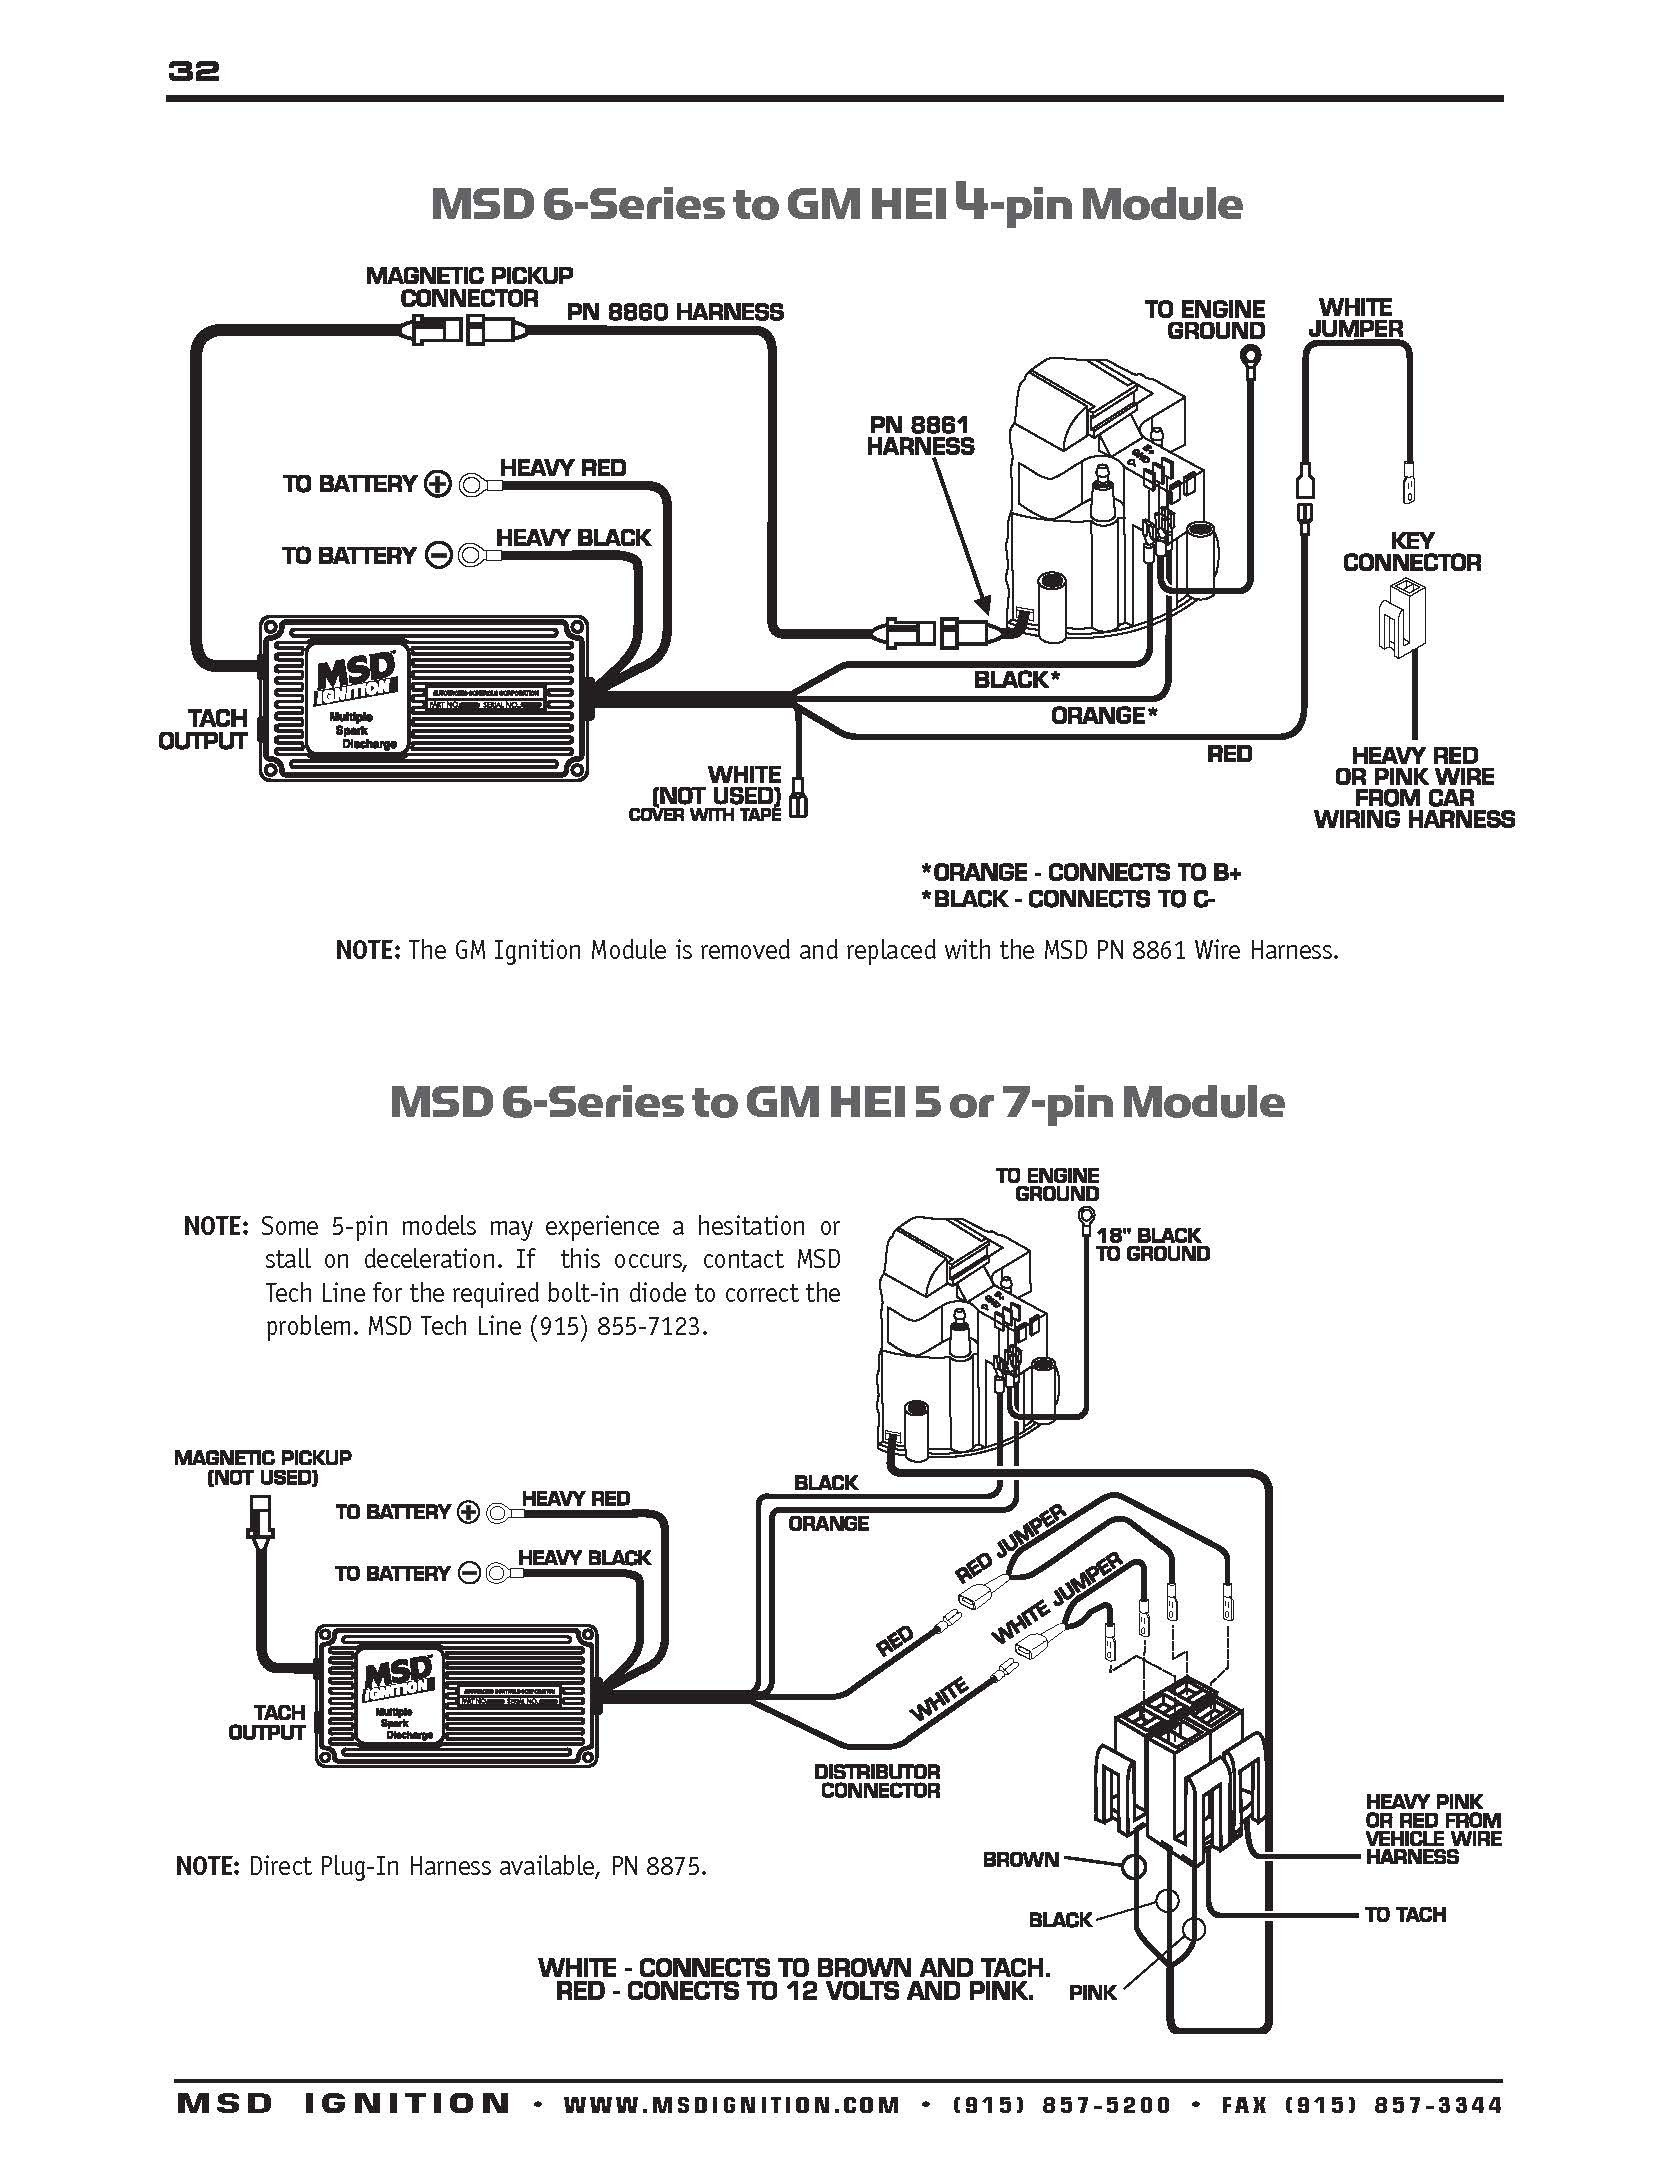 DIAGRAM] Mallory 685 Wiring Diagram FULL Version HD Quality Wiring Diagram  - MULTIPLICITYCLASSDIAGRAM.PALERMOFUMETTO.ITWiring And Fuse Image